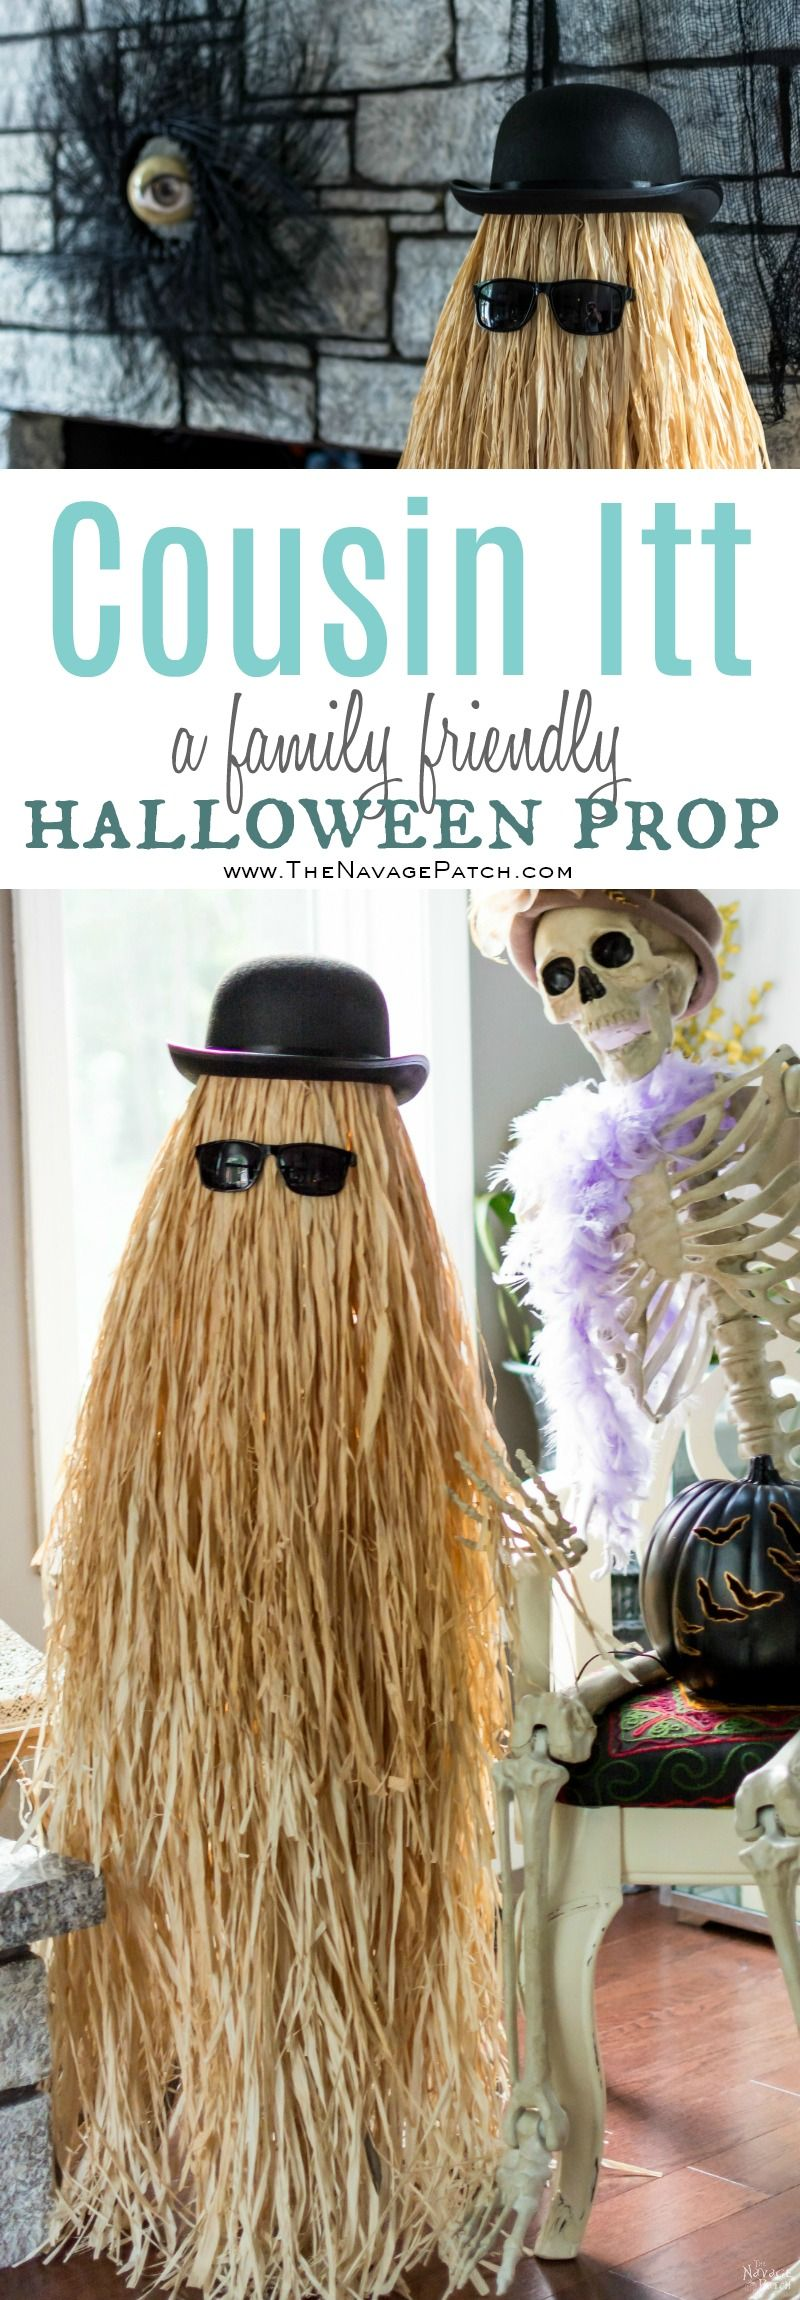 cousin itt halloween prop easy and budget friendly diy halloween prop diy - Super Cheap Halloween Decorations